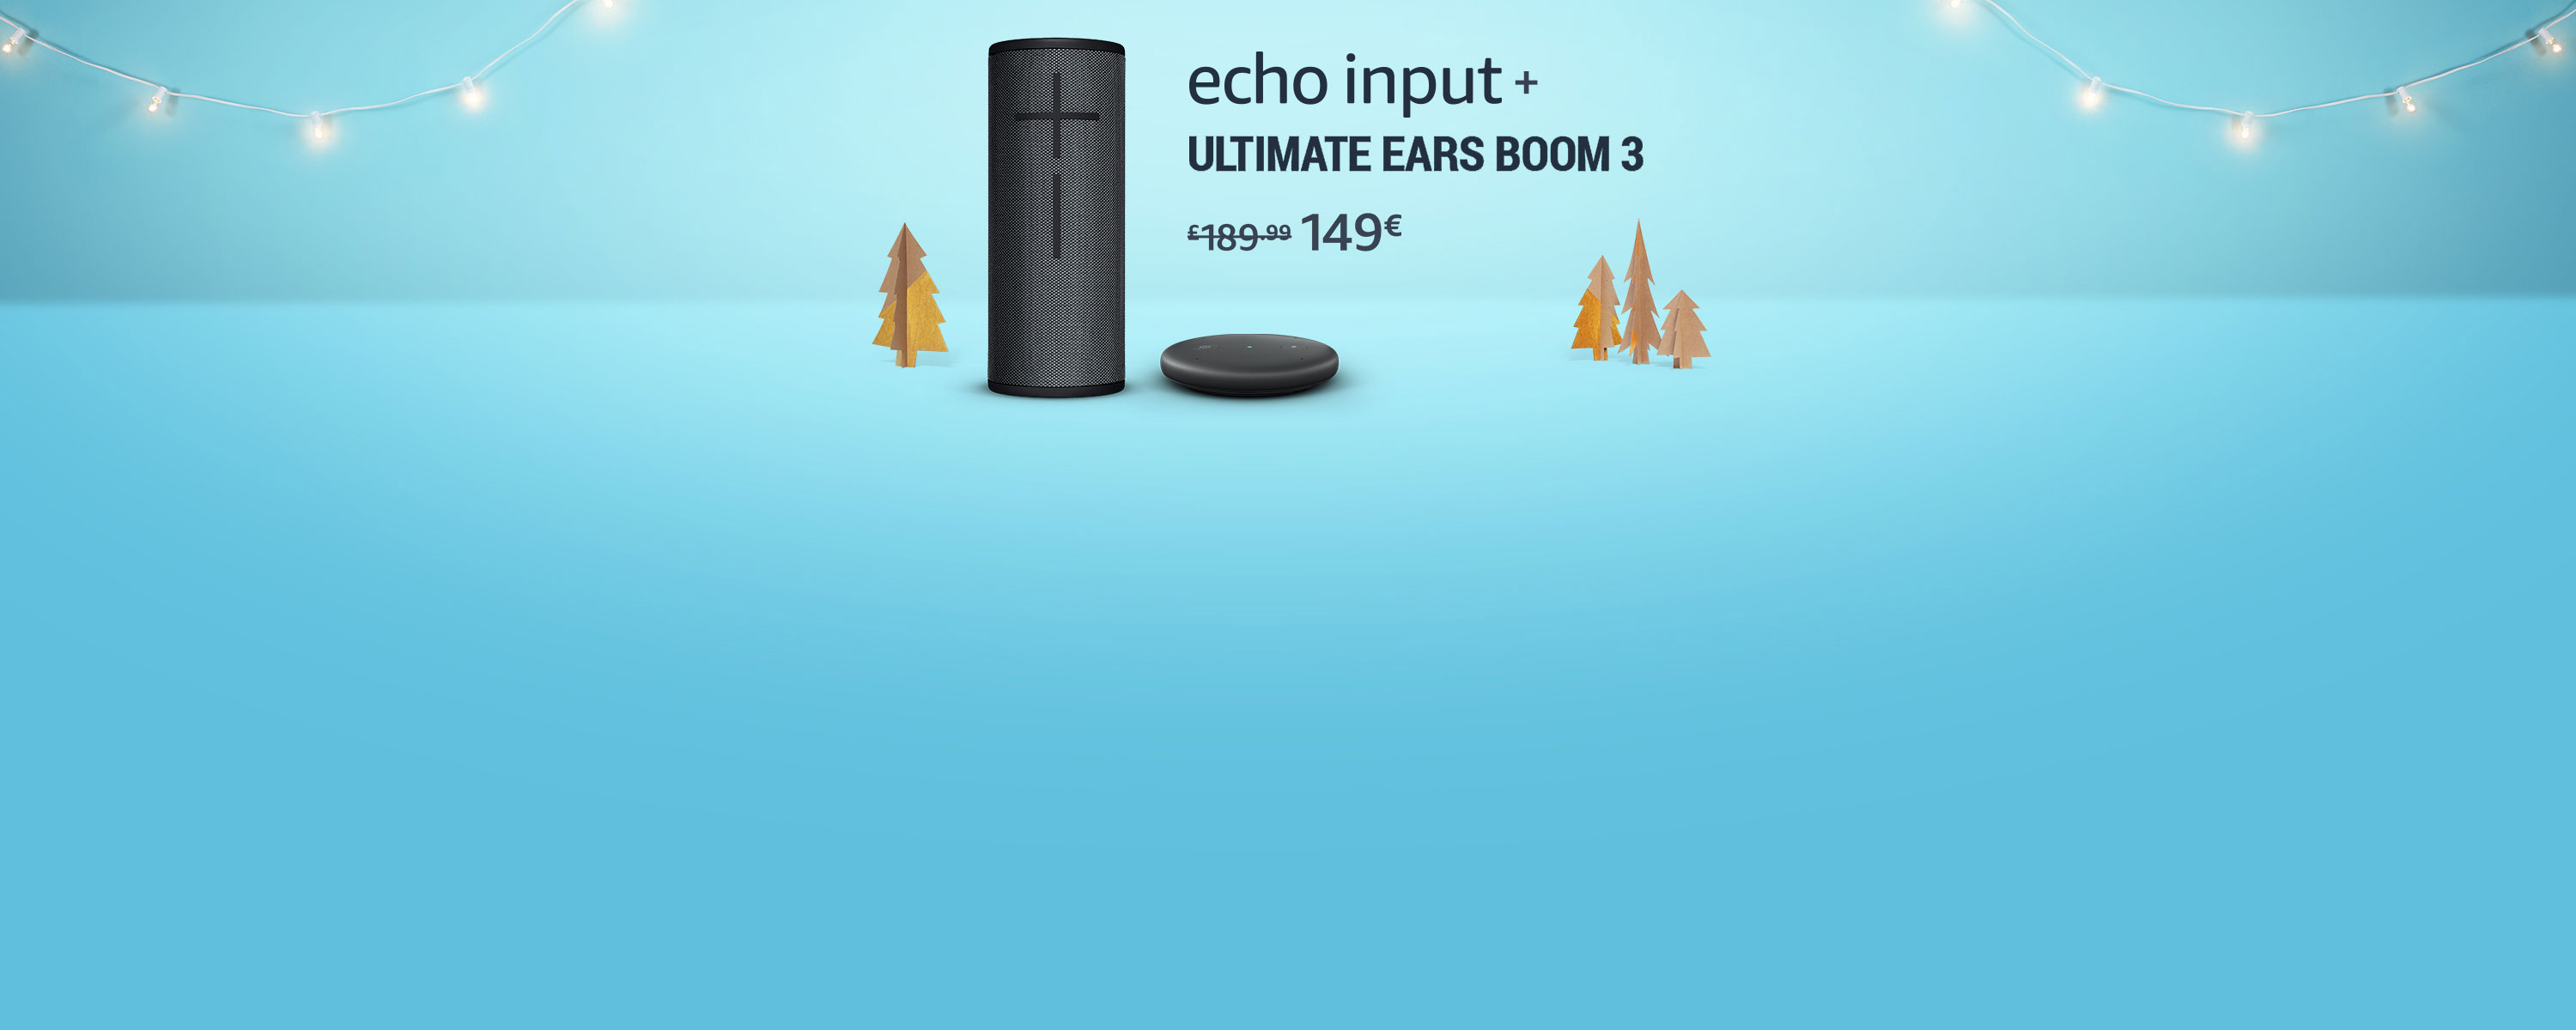 Echo Input + Ultimate Ears Boom 3